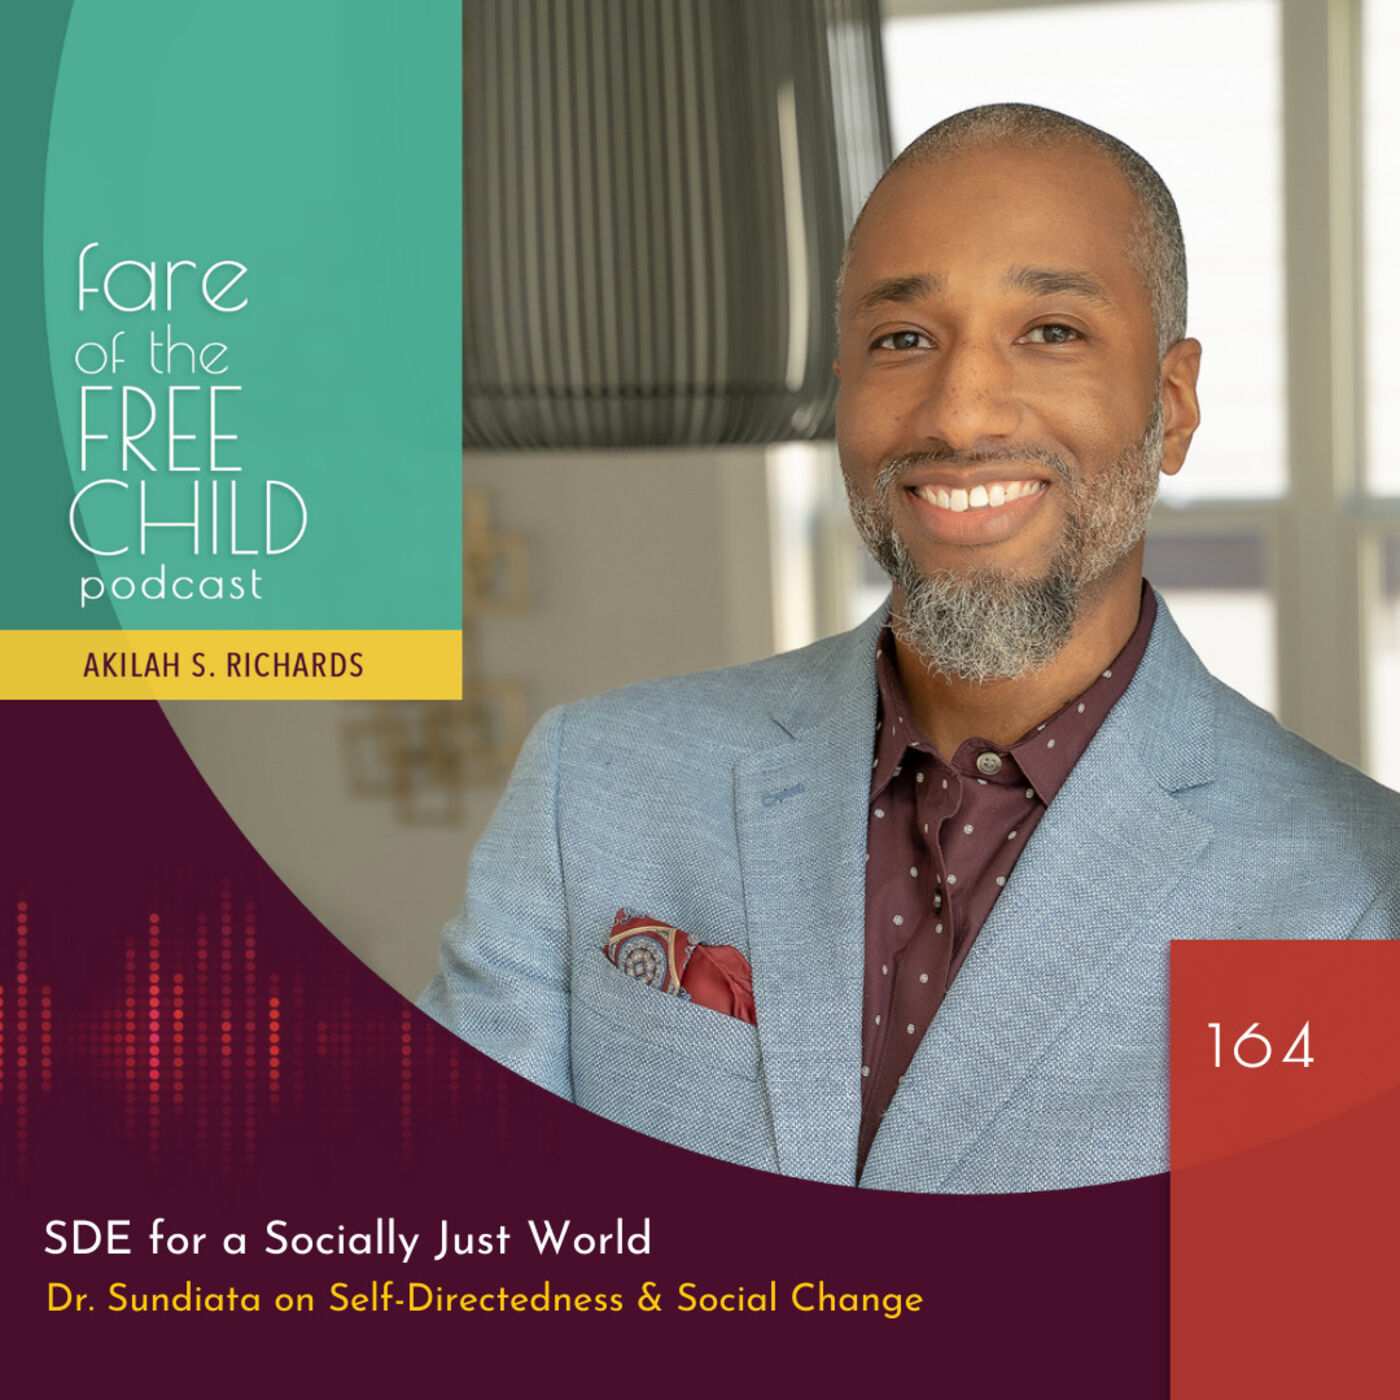 Ep 164: SDE for a Socially Just World